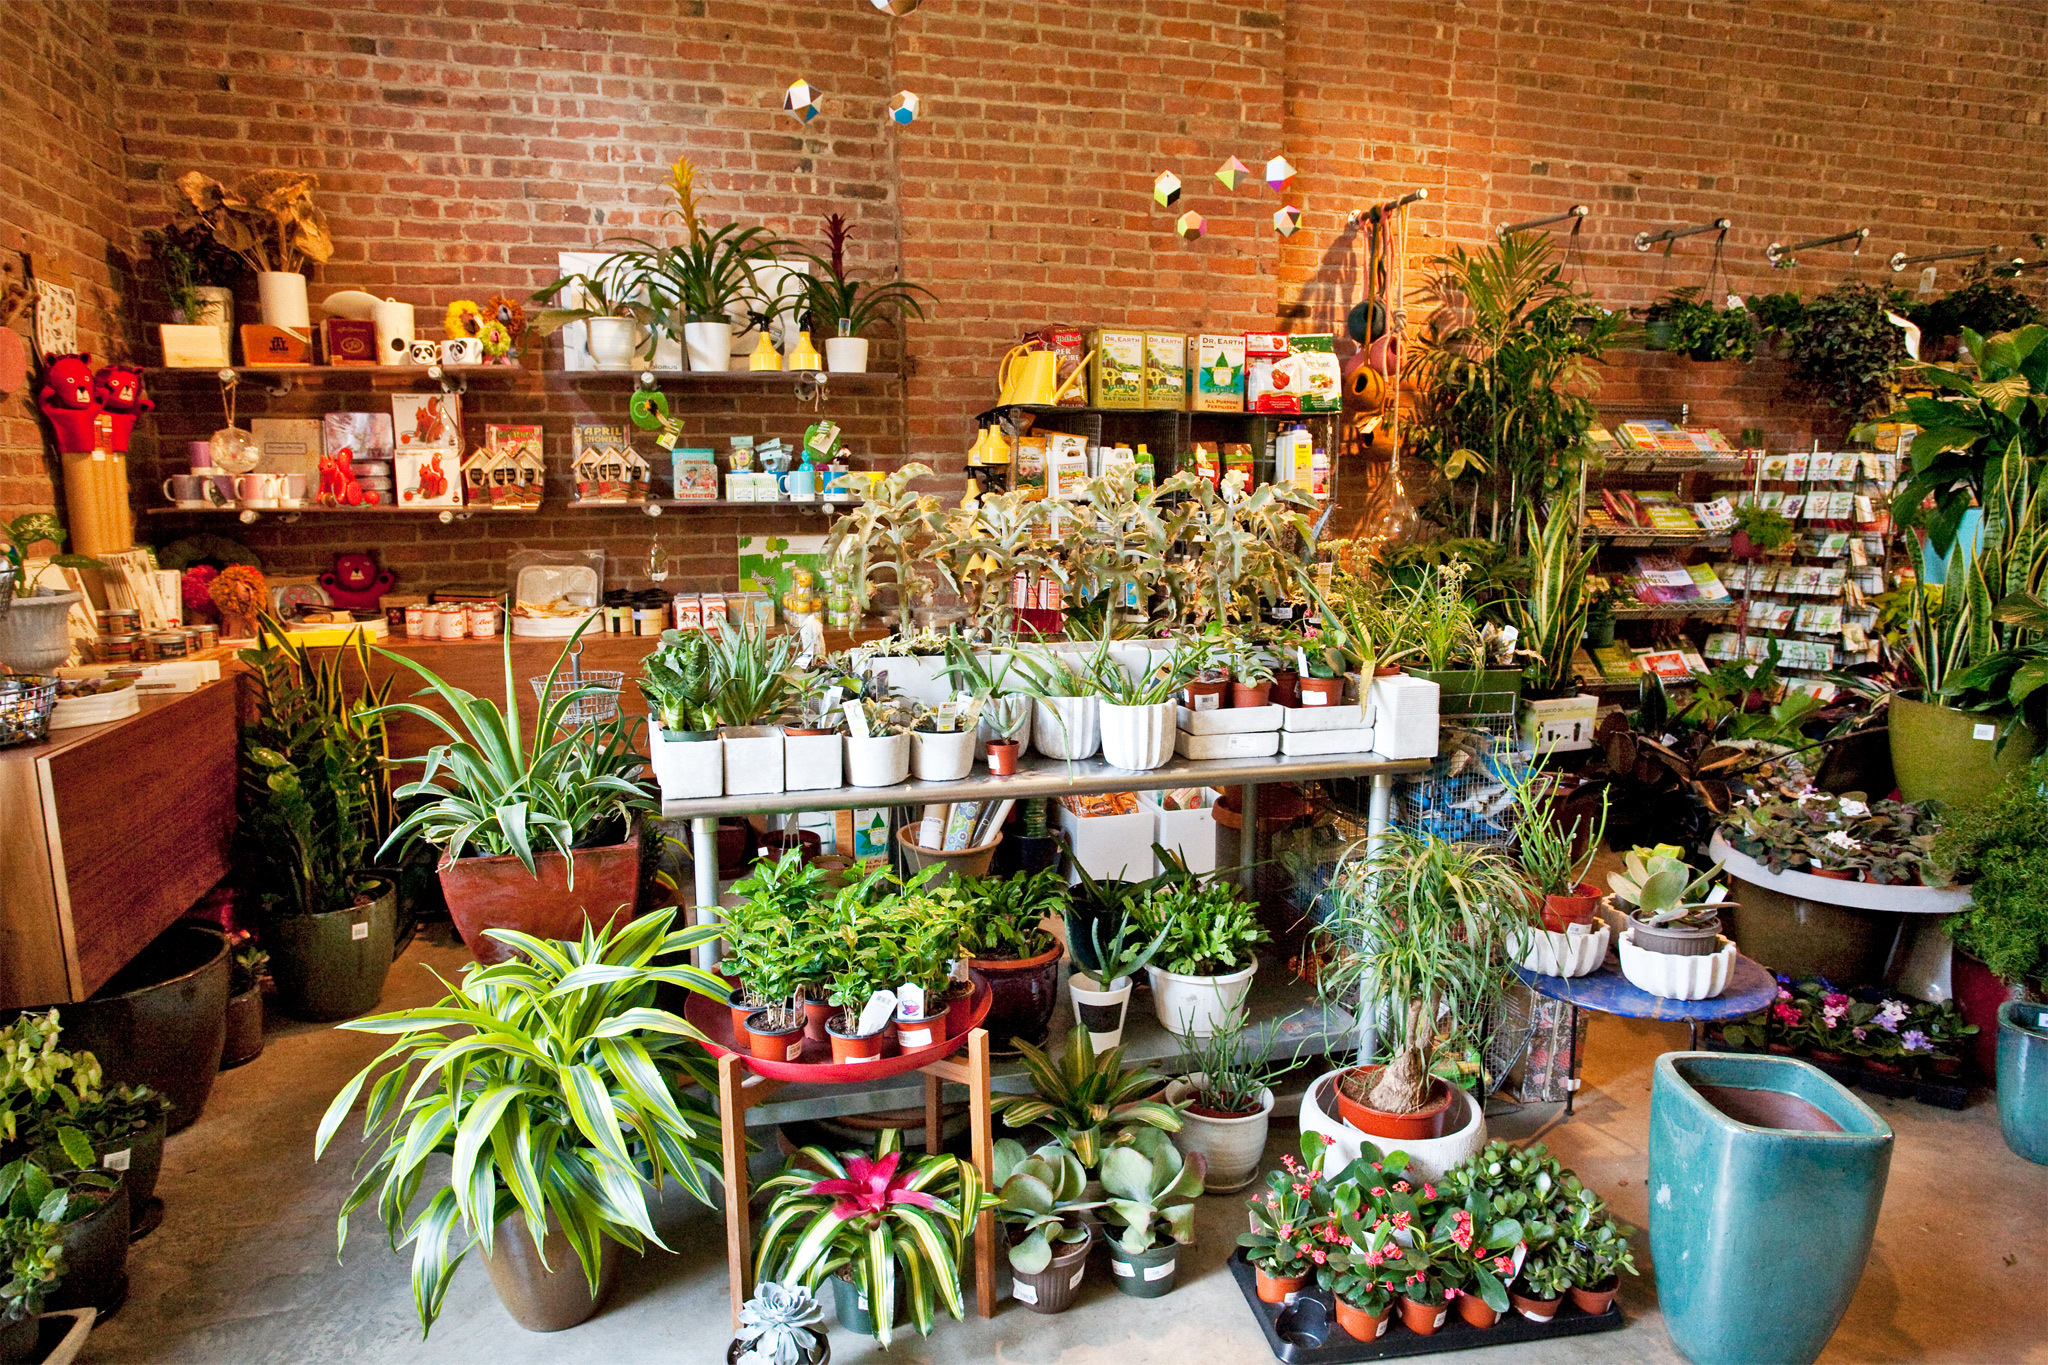 Best garden store options in nyc for plants flowers landscaping sprout home reviewsmspy